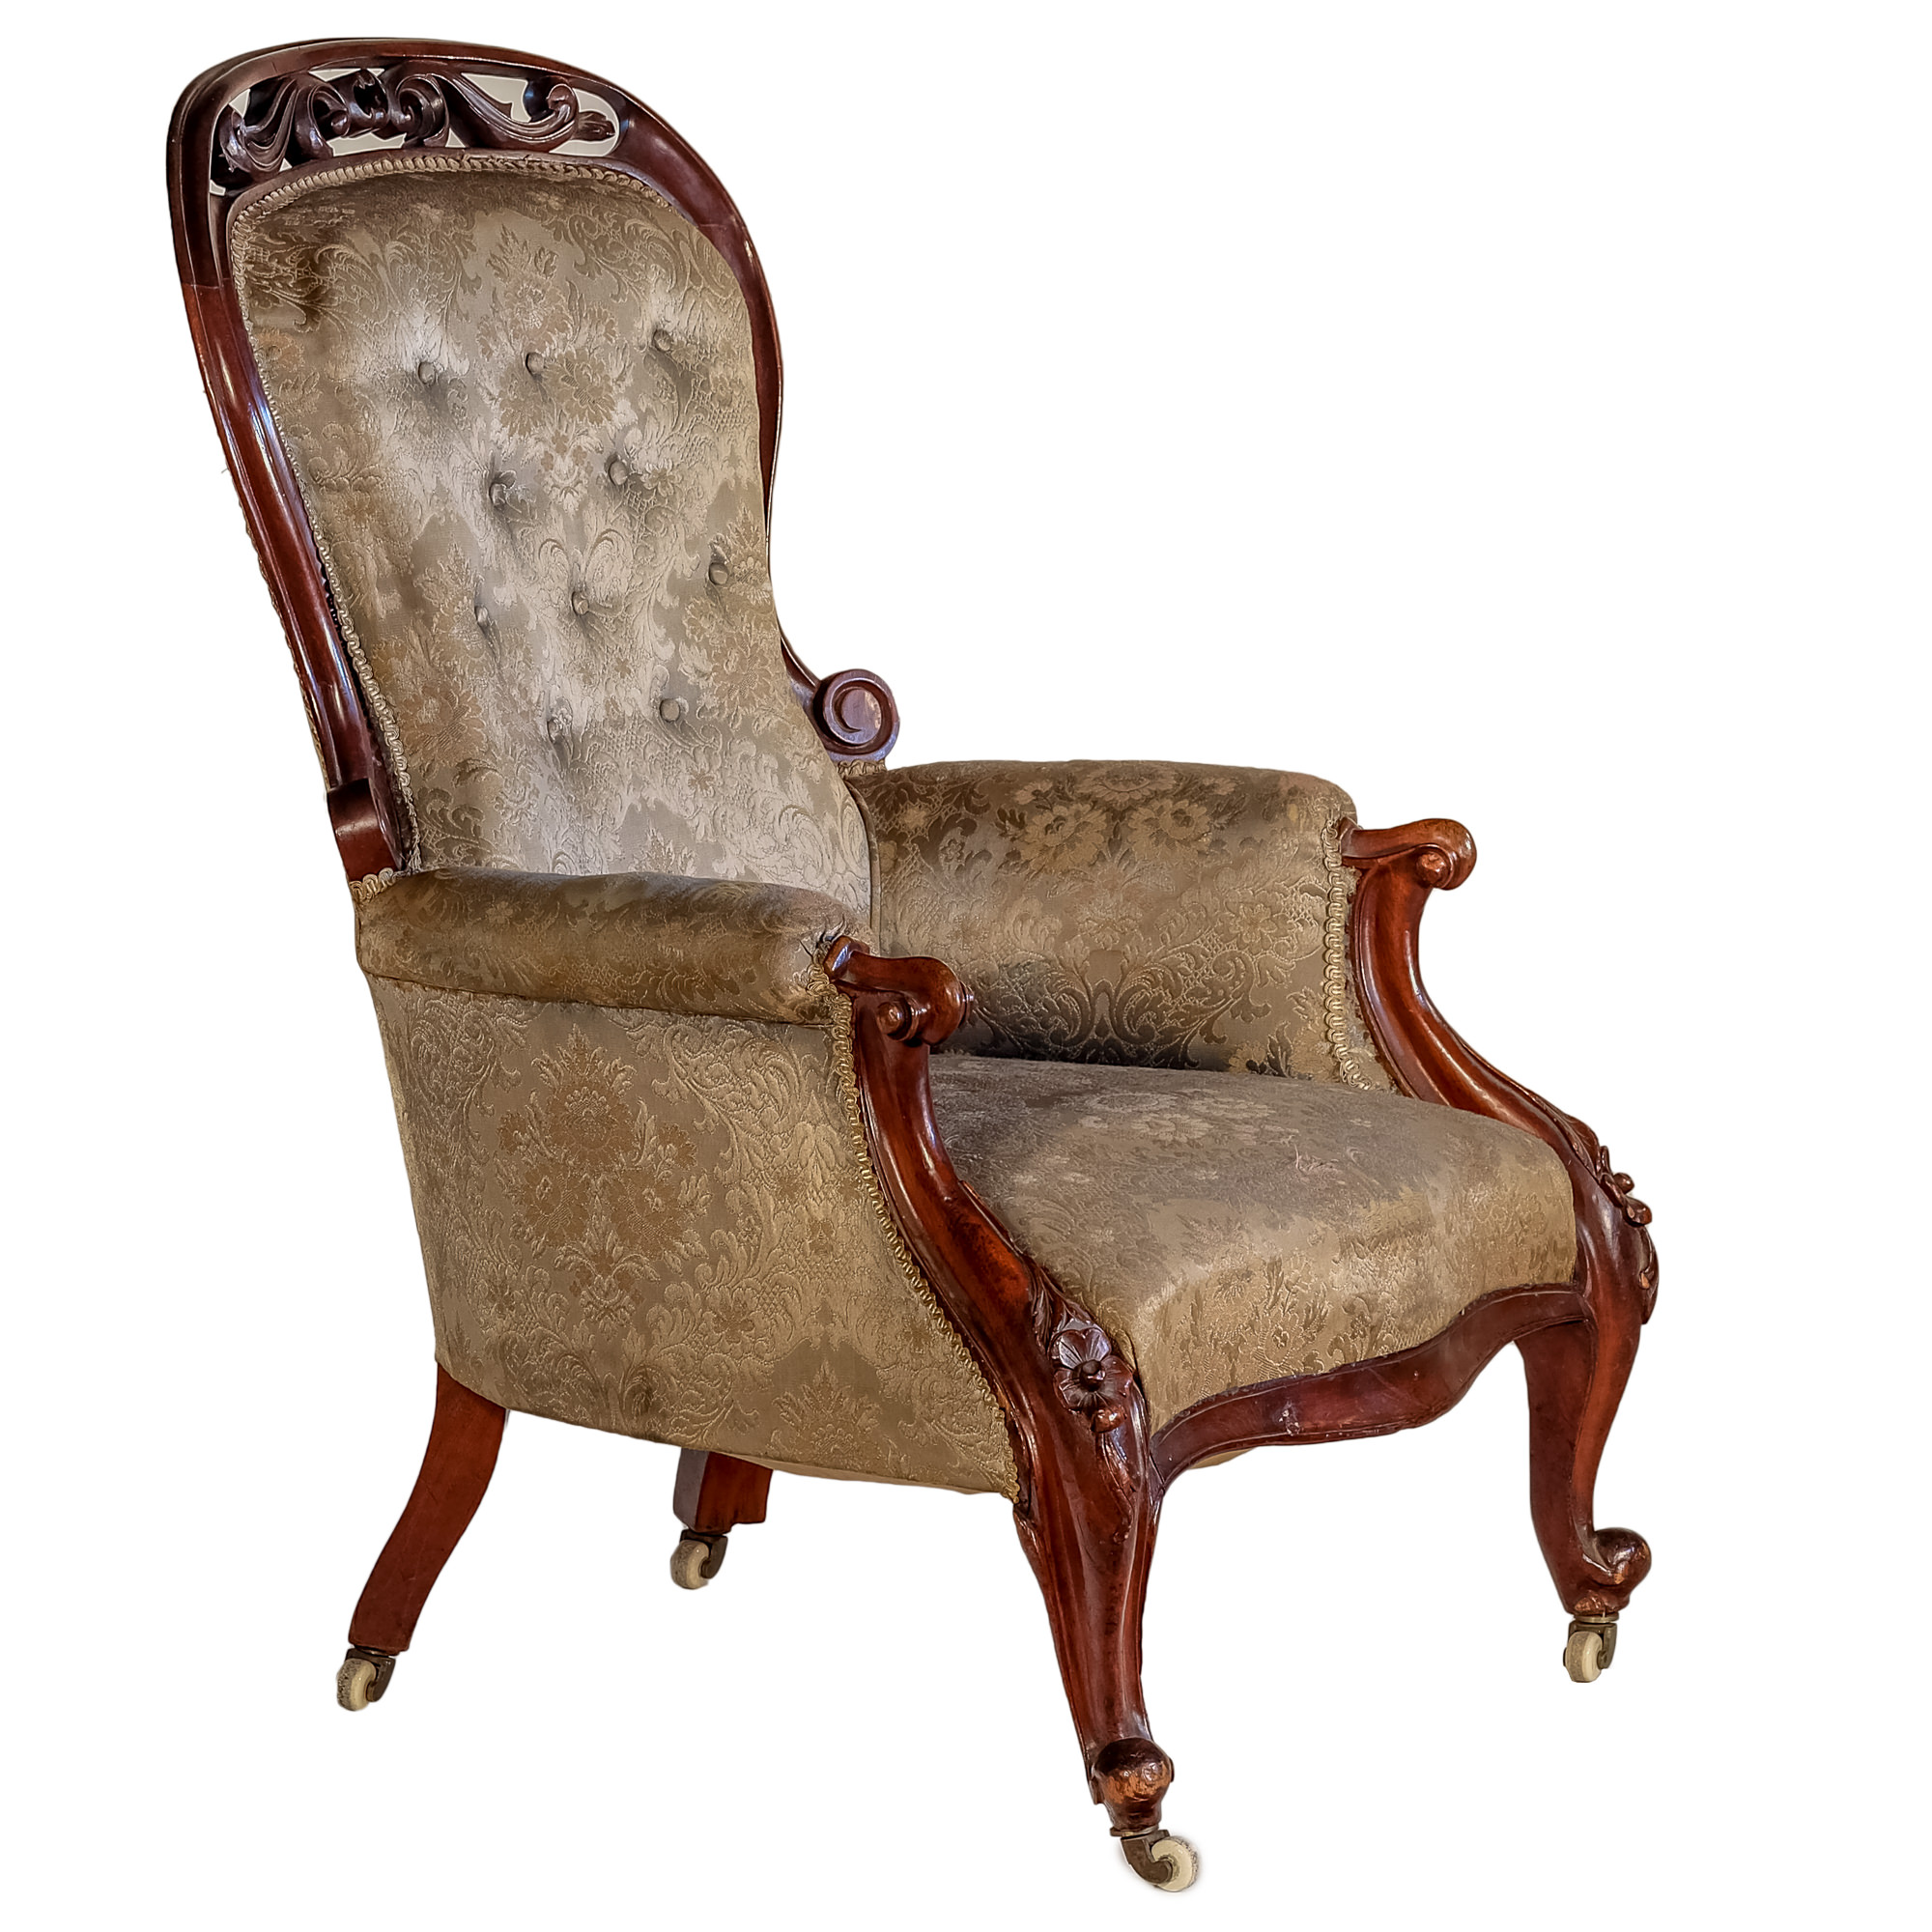 'Victorian Mahogany Salon Chair with Pierced and Carved Crest Circa 1880'